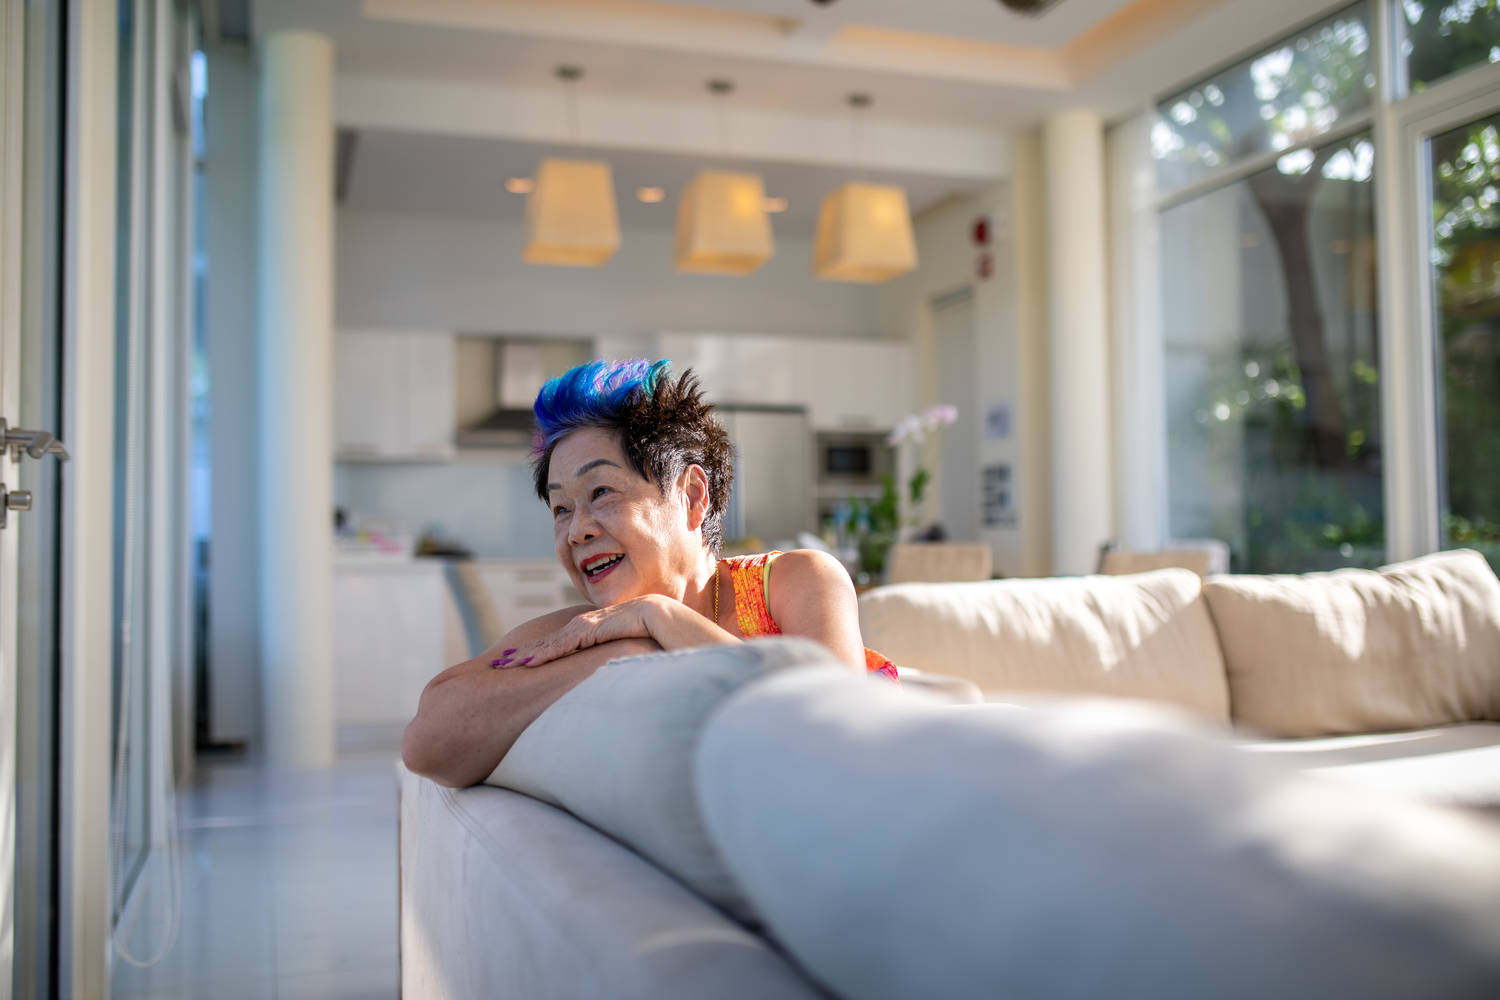 Blue haired woman sitting on couch